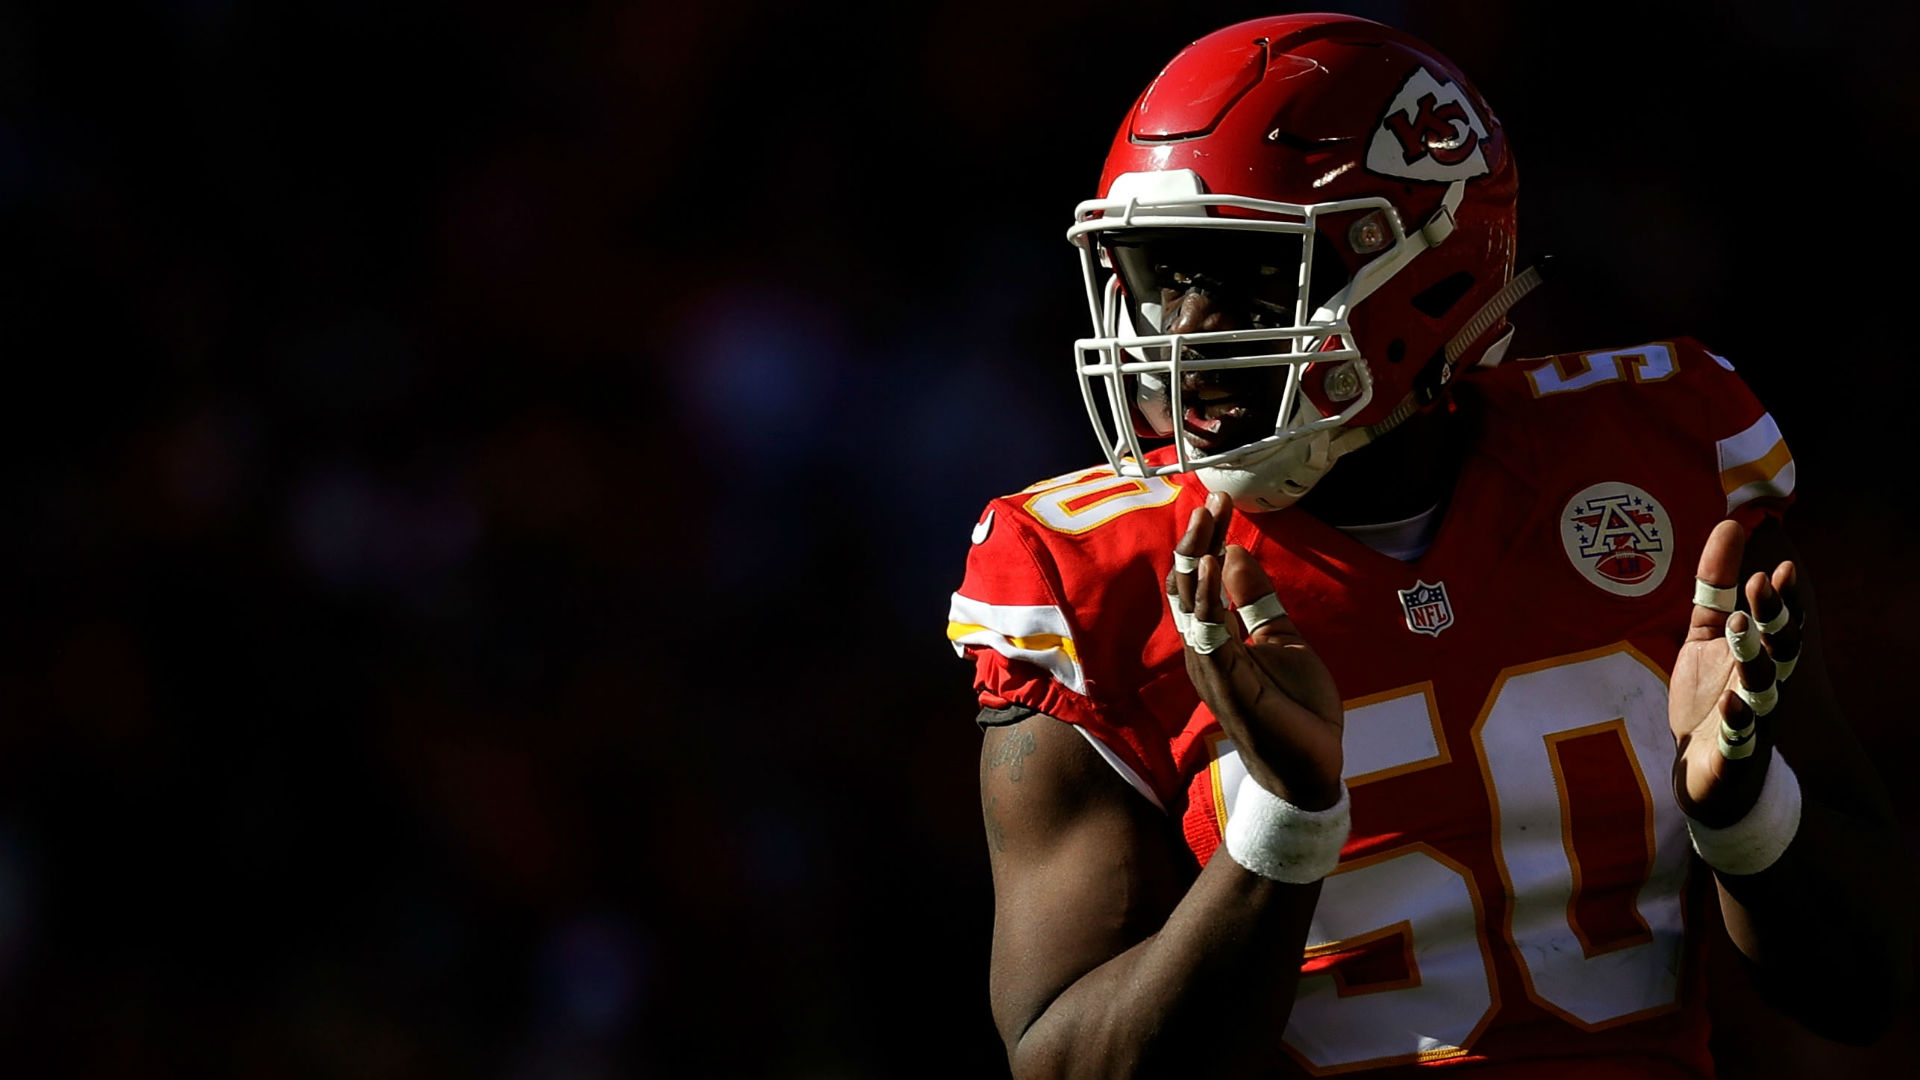 Chiefs will take all the Justin Houston they can against